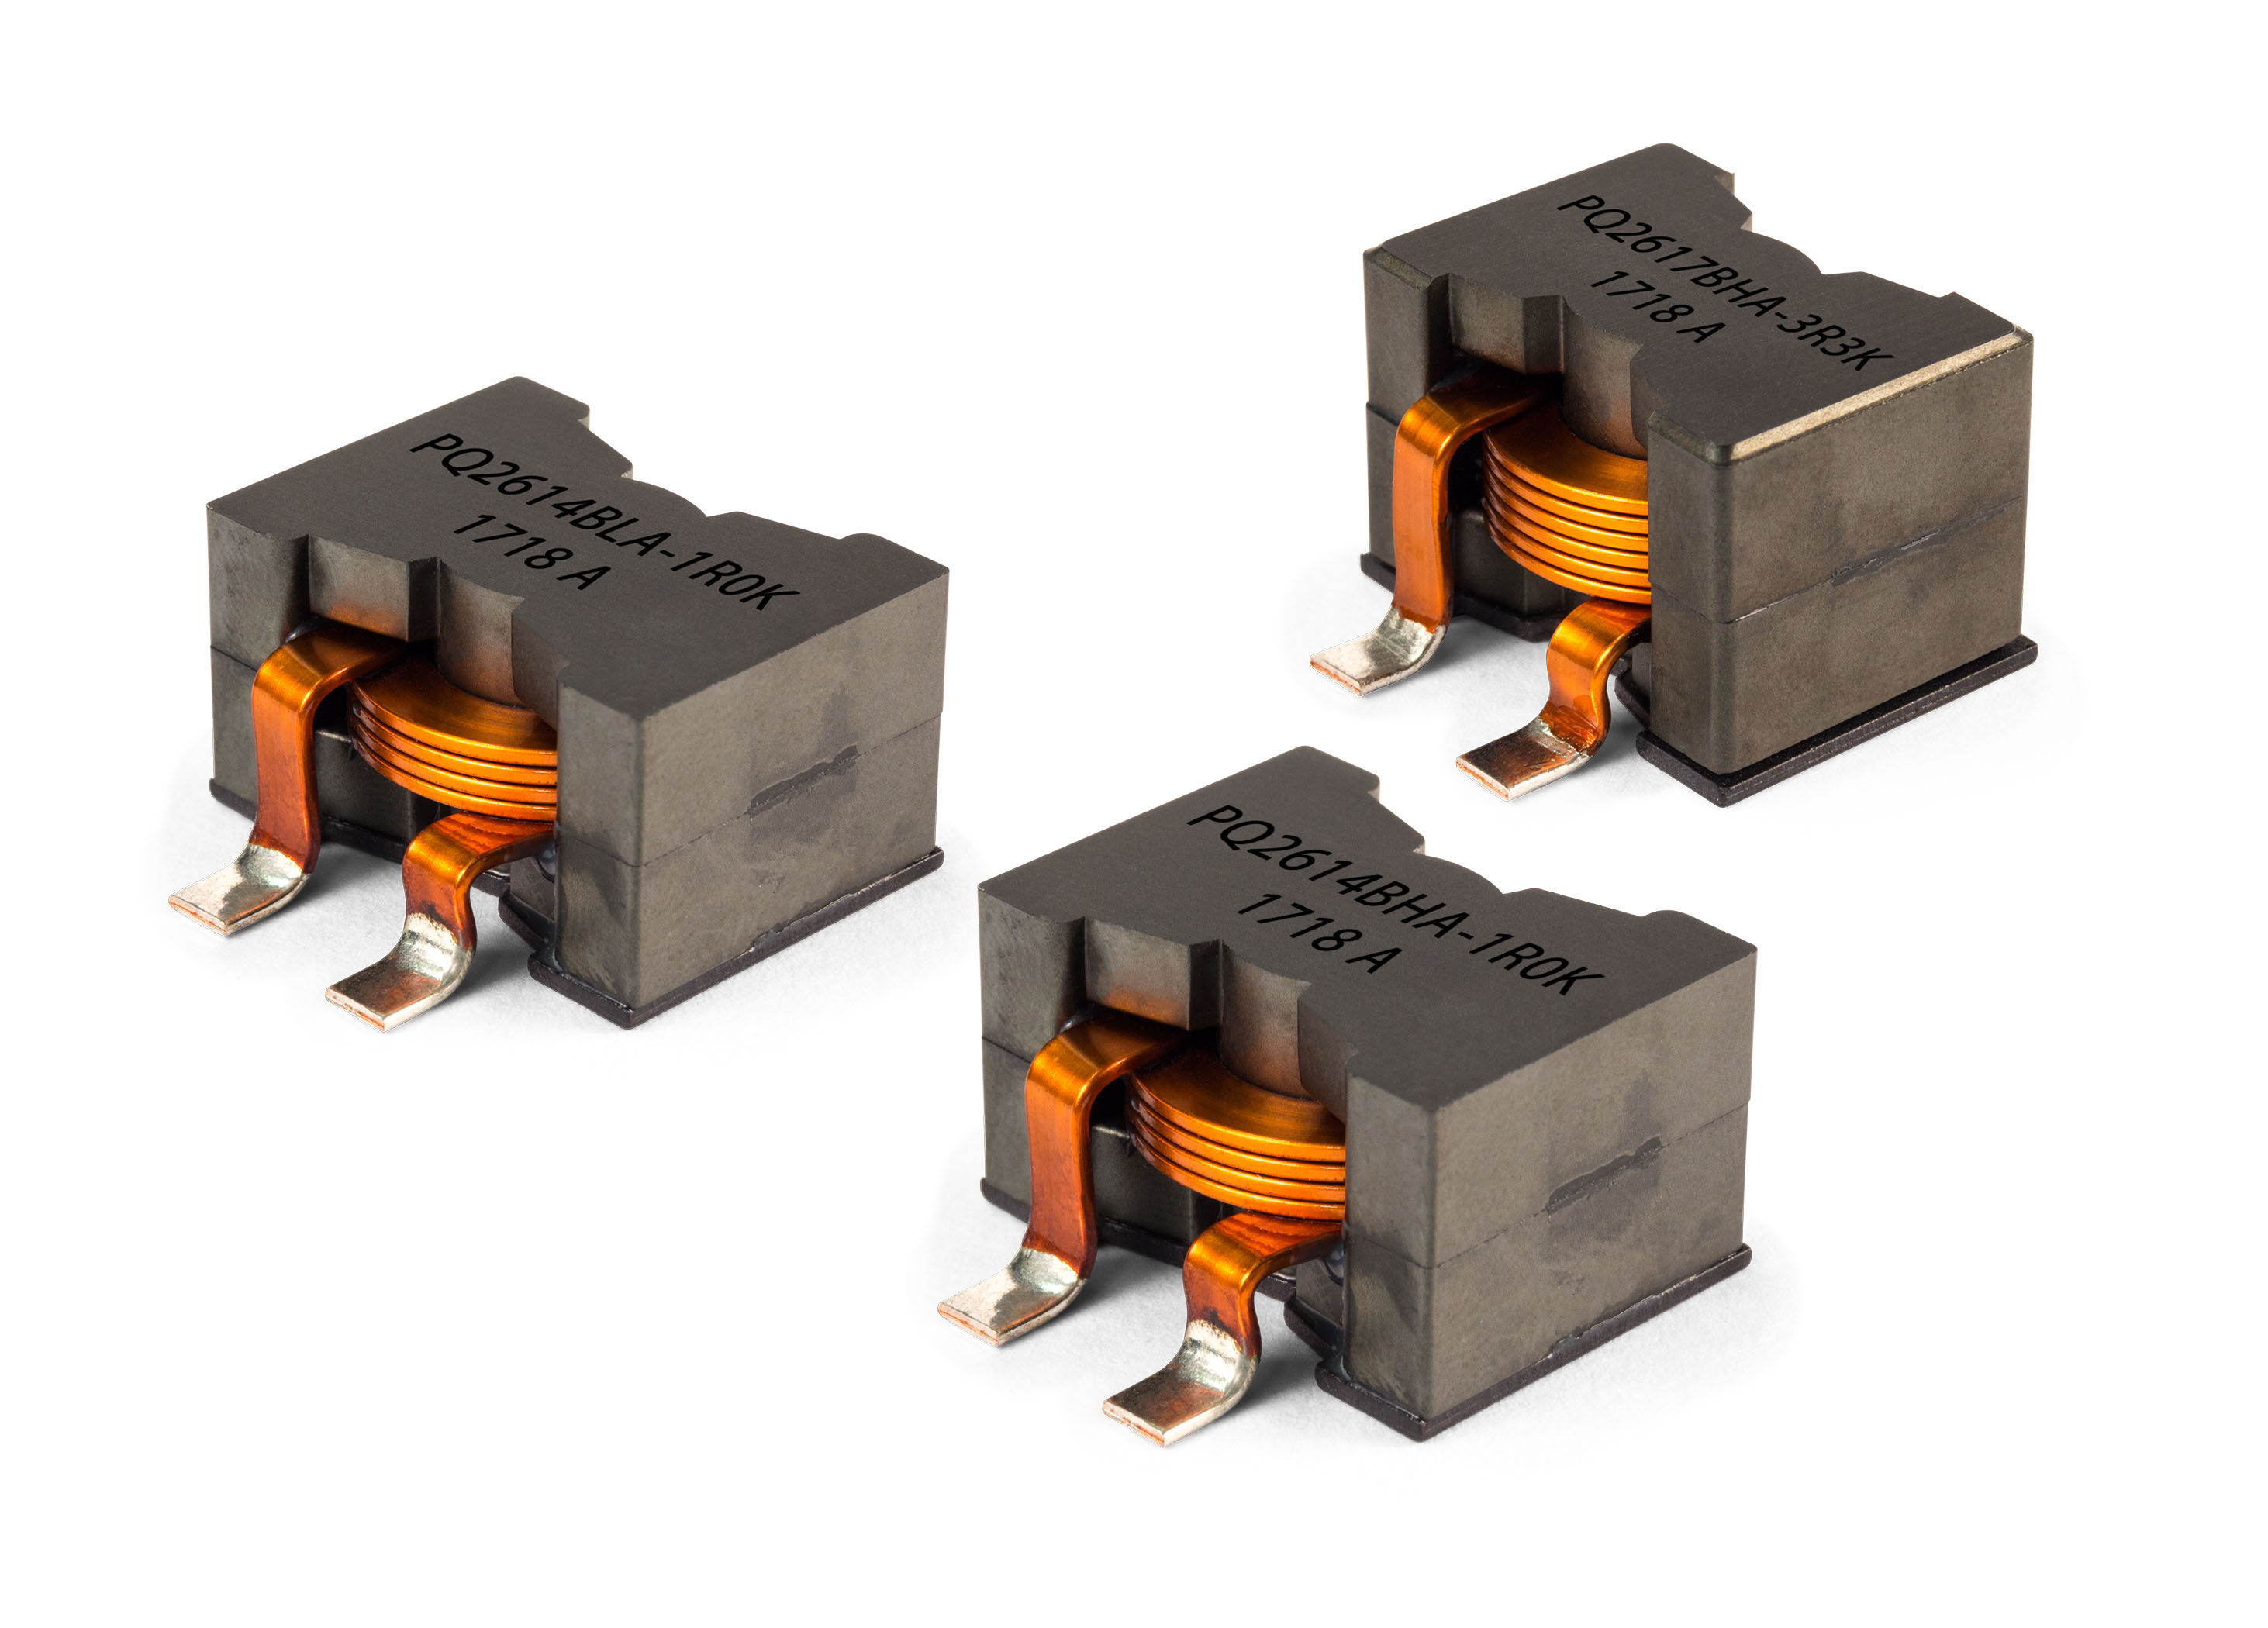 AEC-Q200-Qualified Power Inductors Offer Exceptionally Low Resistance, High Saturation Current